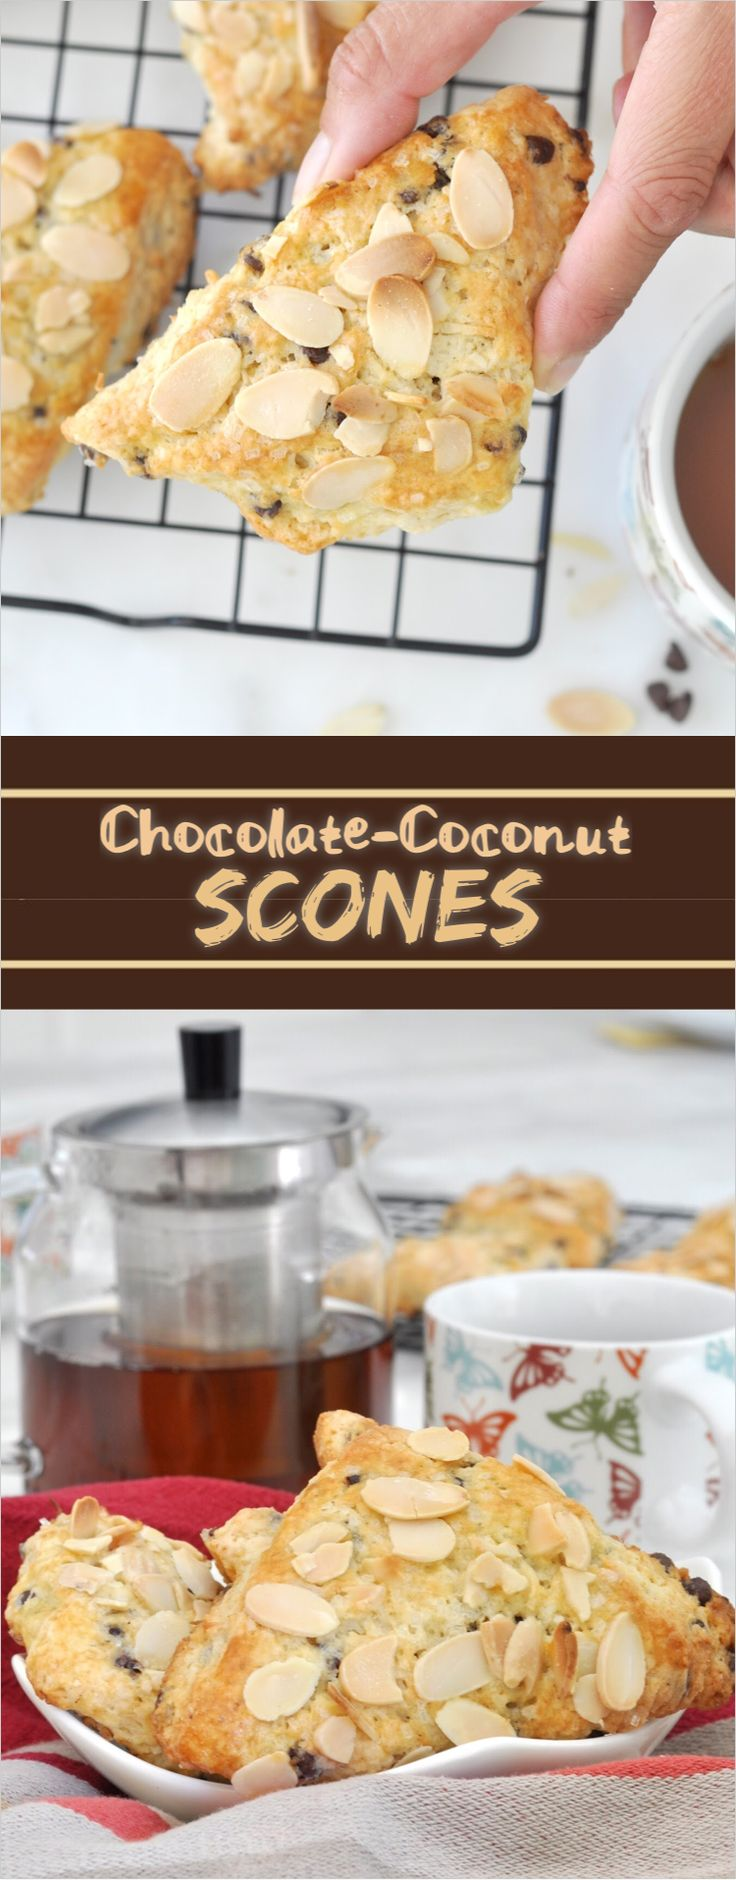 Stay warm and snuggle up to these flavorful scones next to a steamy hot cup of tea ☕️